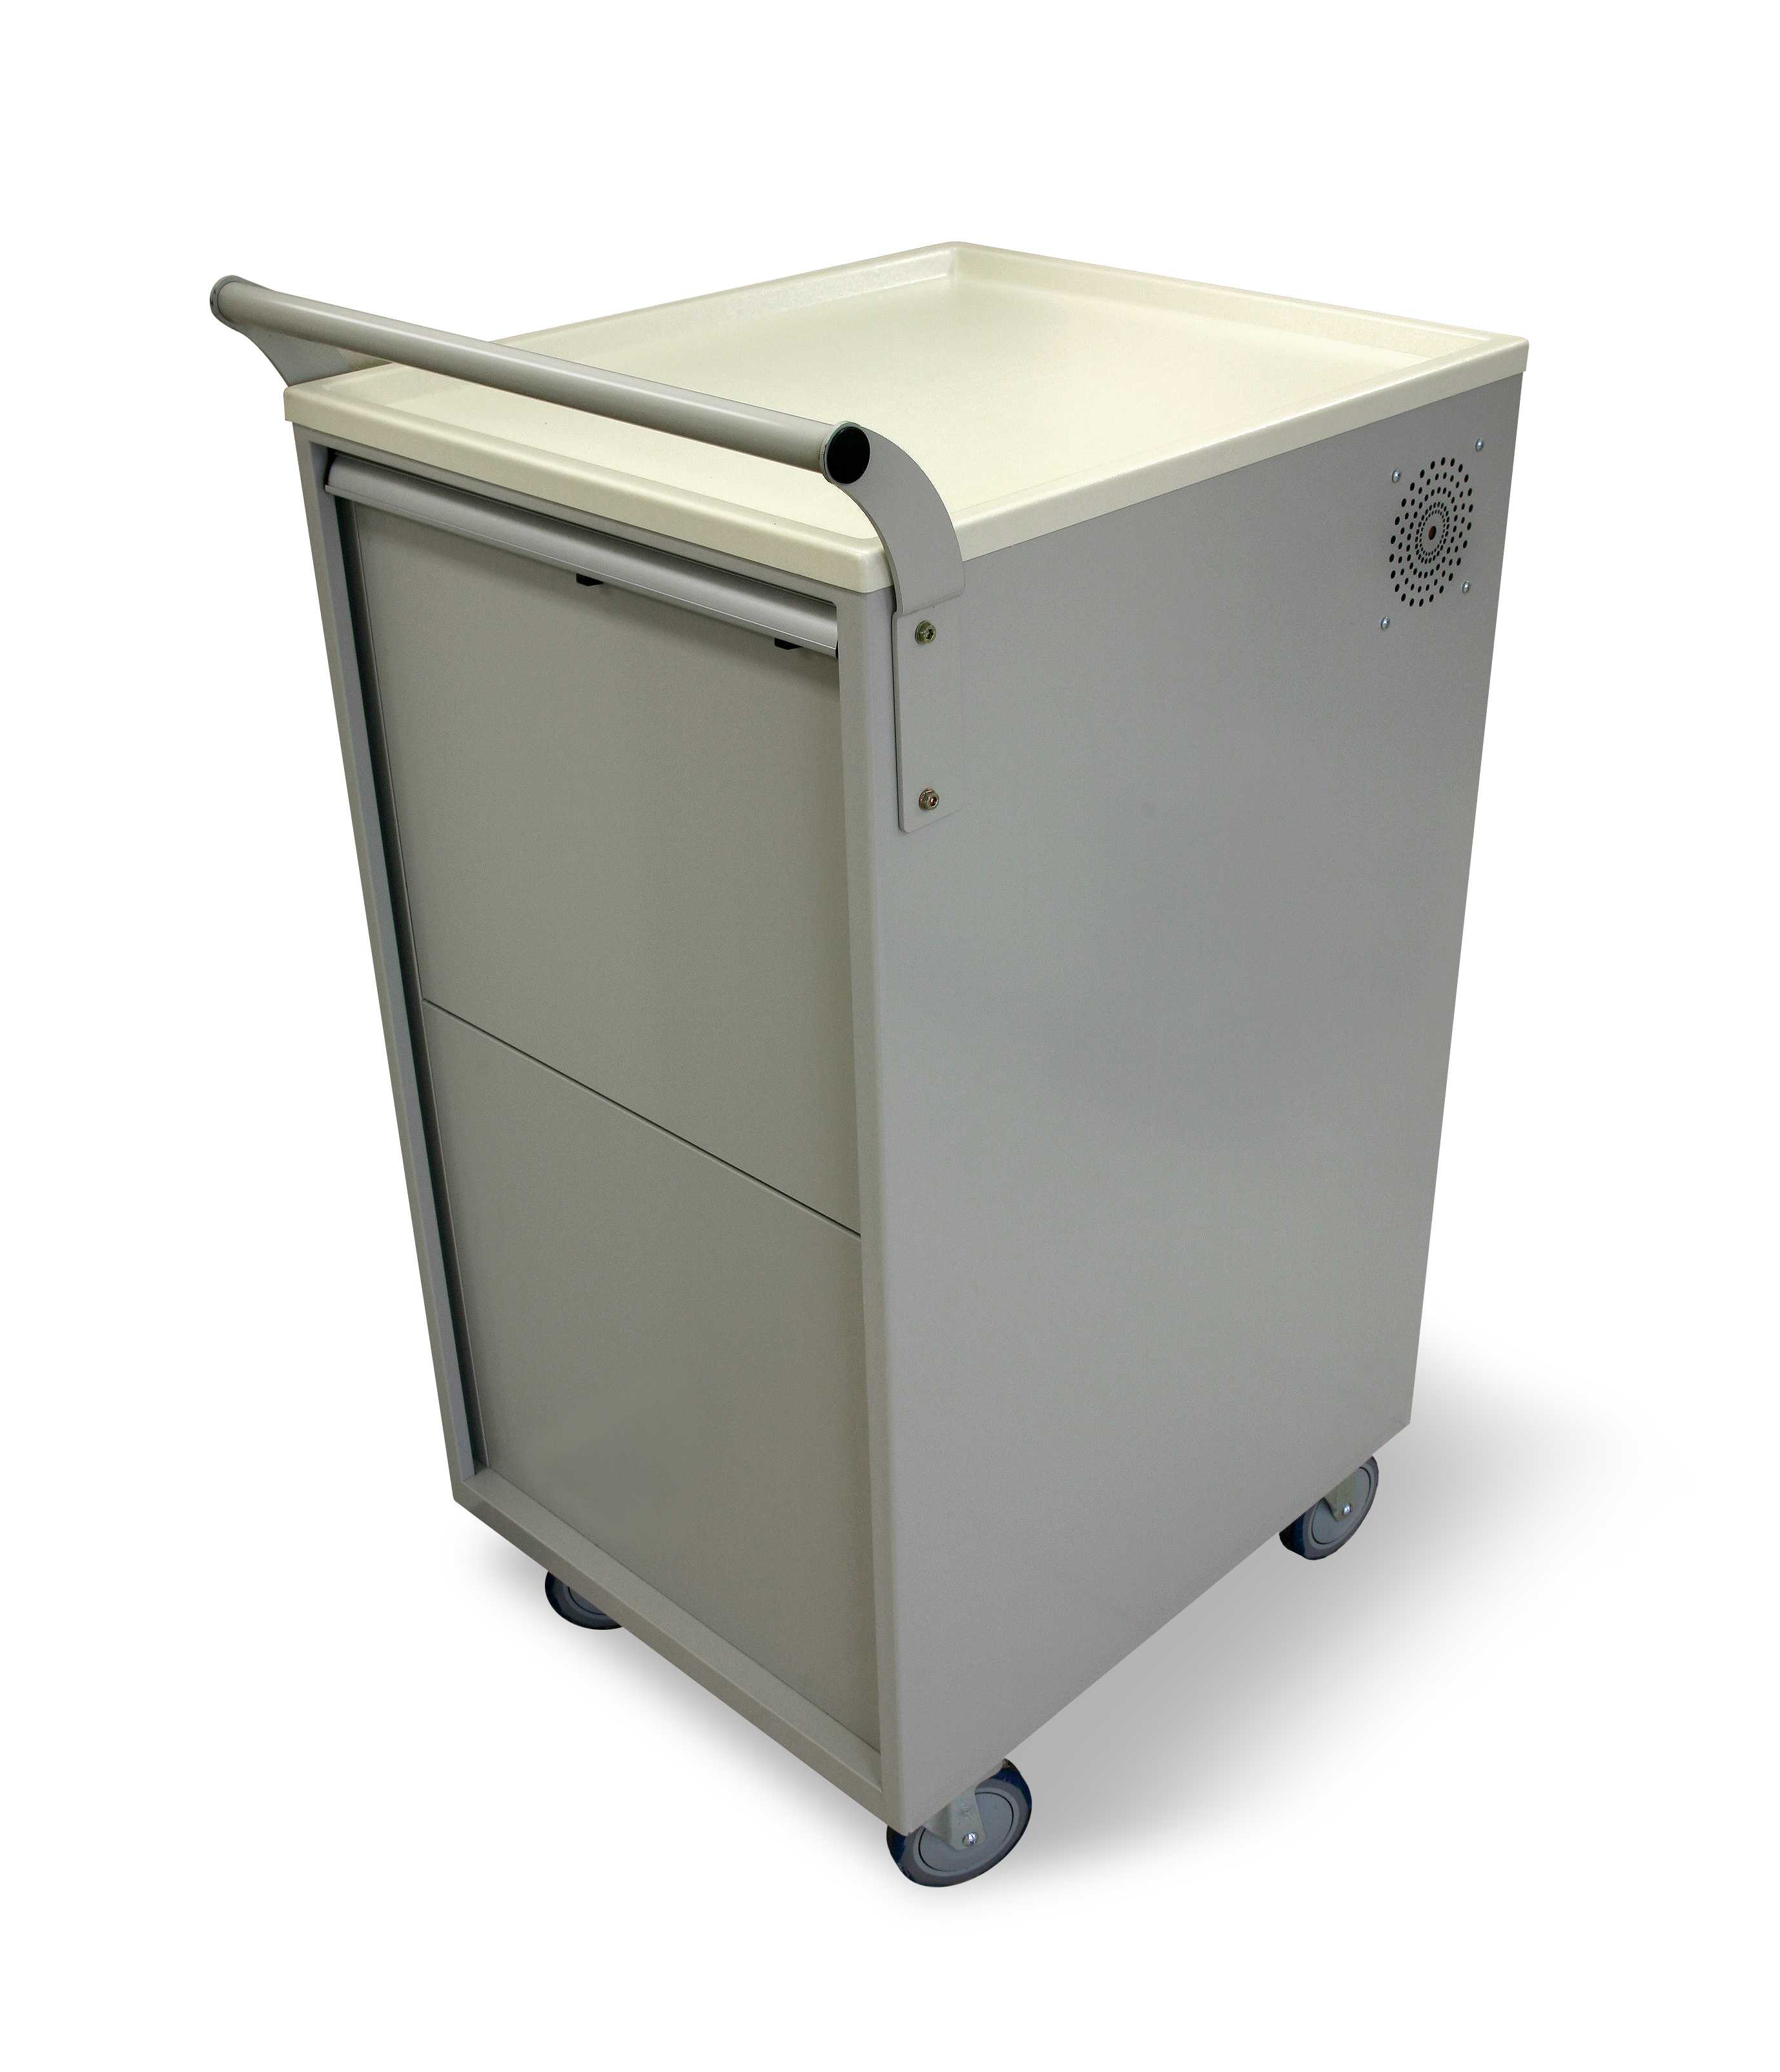 """Mobile Laptop Computer Cart stores securely Notebooks computers. Cart is expandable to store up 18 notebooks / Netbooks while providing full electric recharging and cooling capabilities for each notebook. Cart comes standard with 4 6'heavy duty balloon wheels, foot activated breaks, retractable power cord, multiple side outlets available to use for a projector/printer/scanner on a non skid surface. Optional rail locks allow cart to be secured to wall. Dimensions: 23.5"""" W x 26"""" L x 49.5"""" H"""